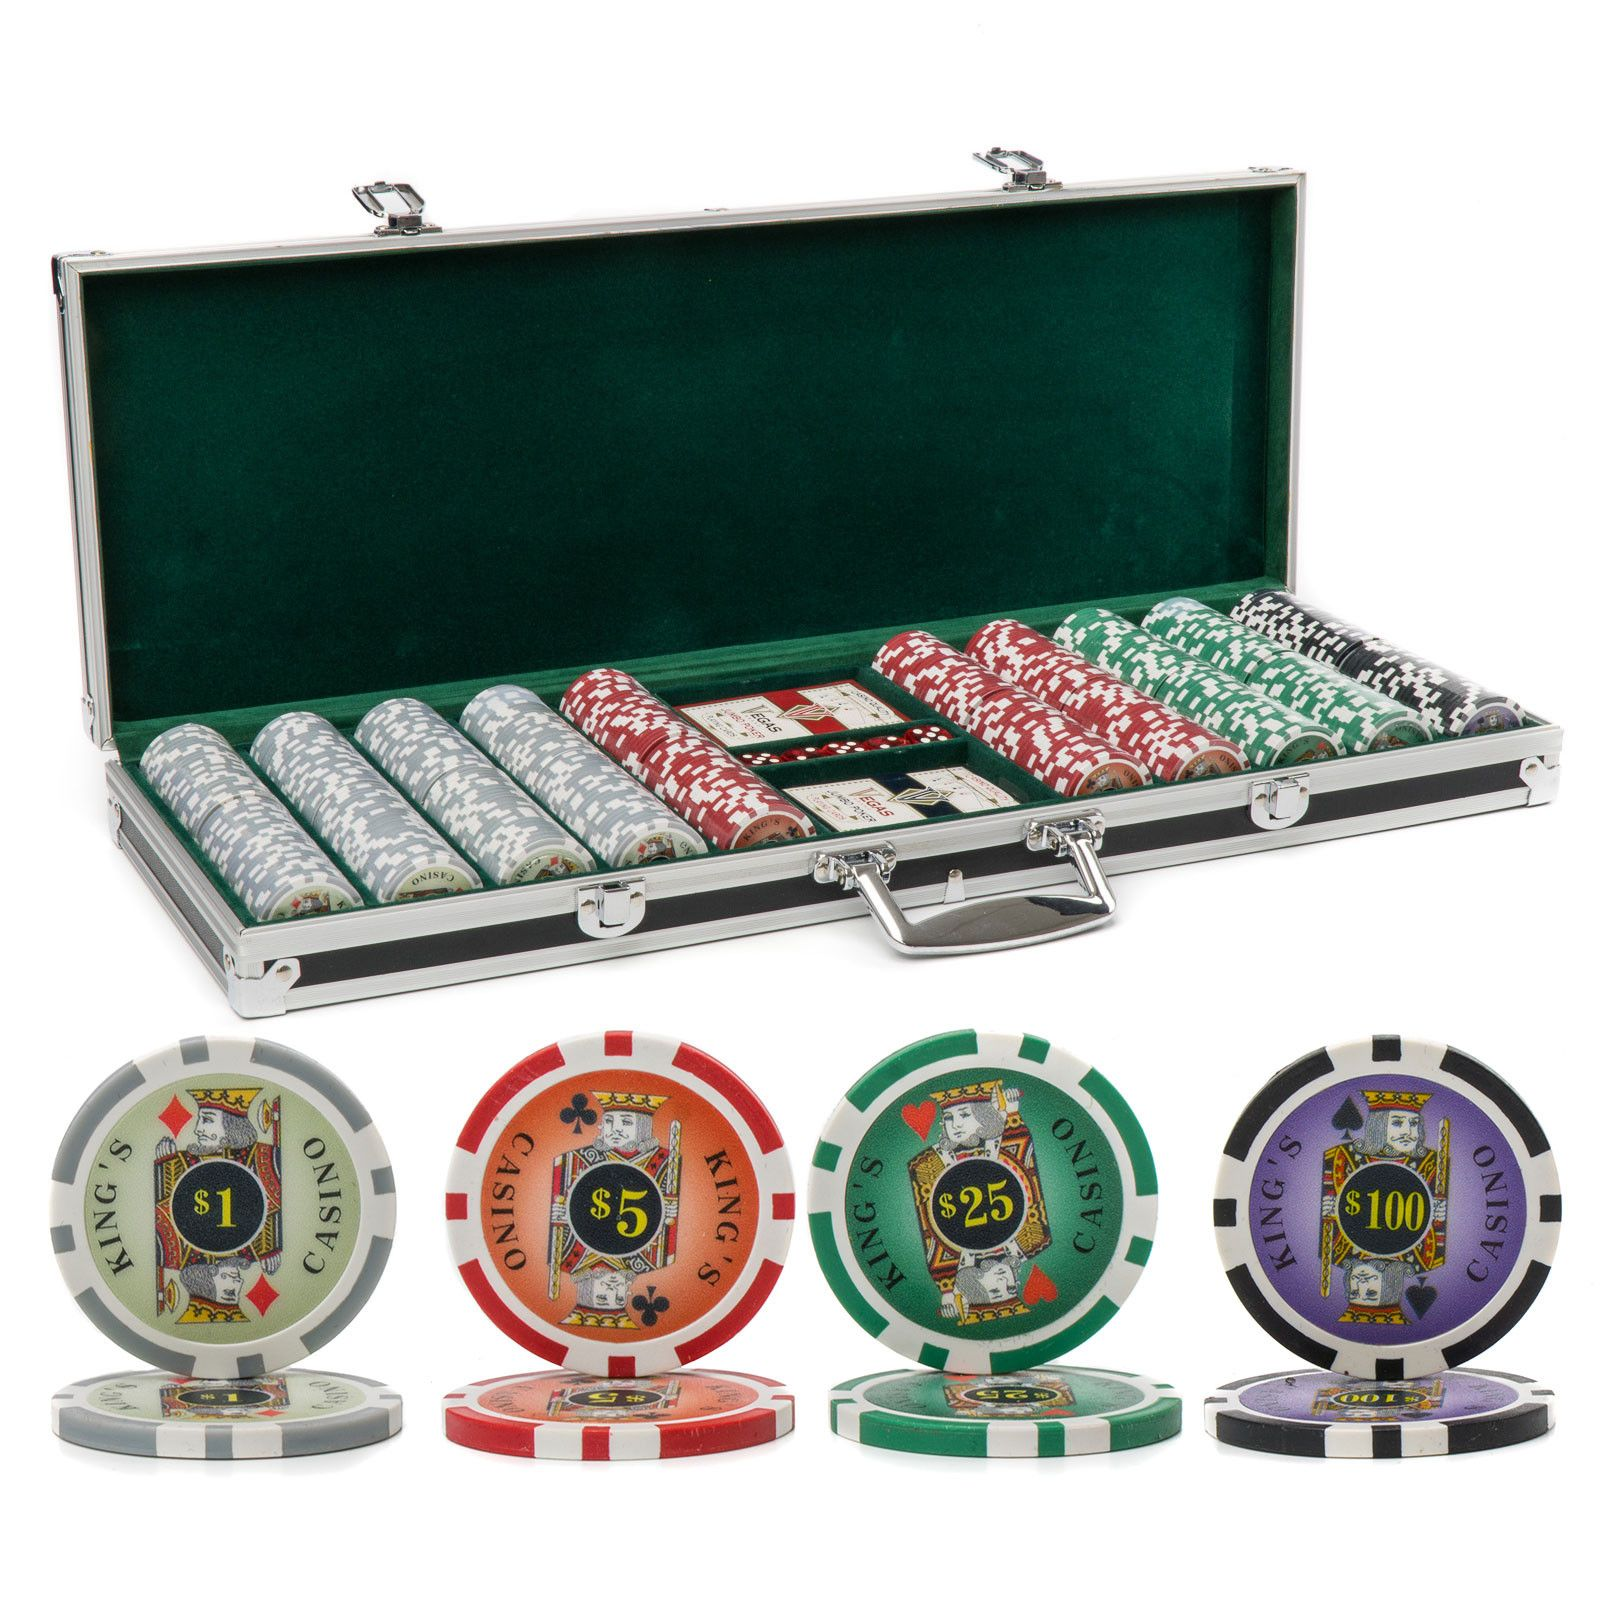 Complete card/chip set with latching carrying case and